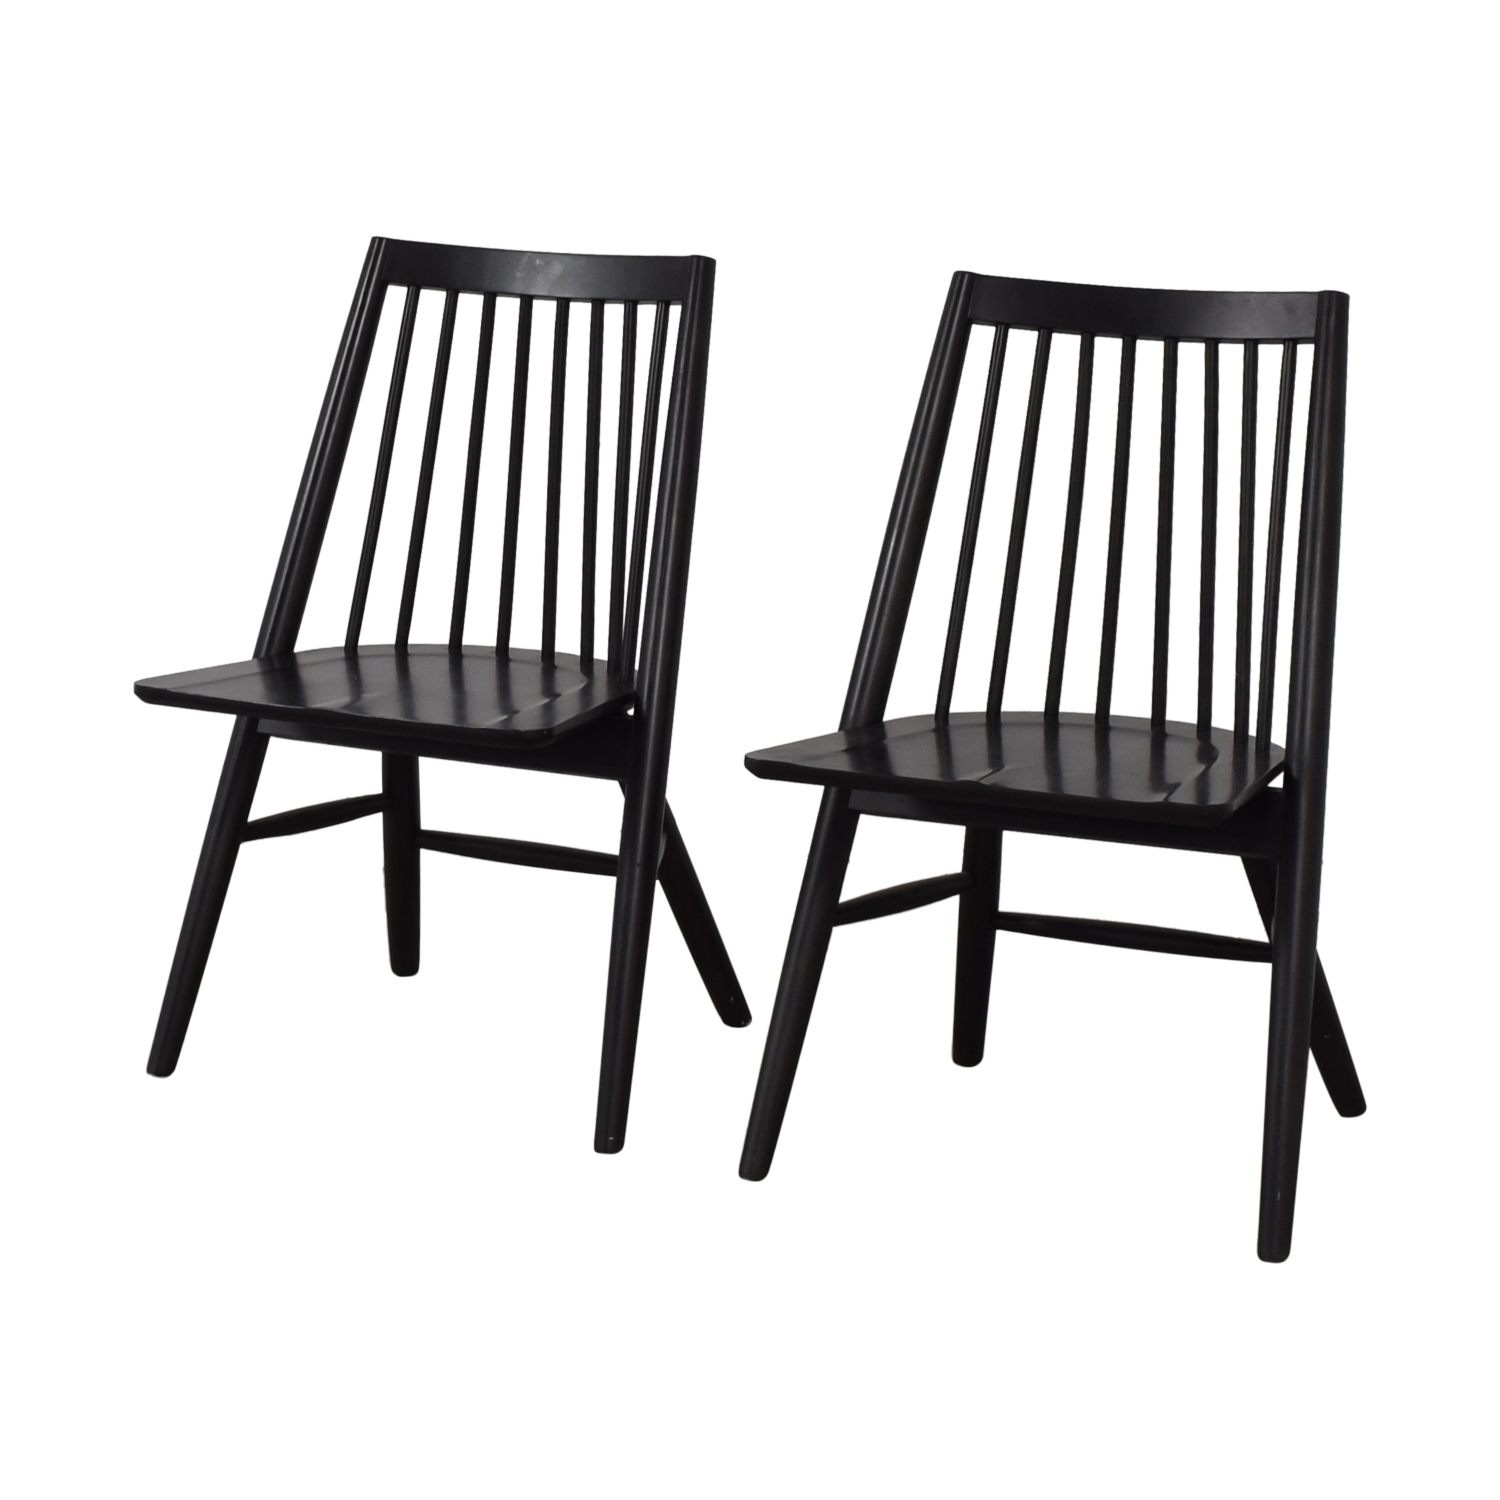 West Elm West Elm Black Spindle Chairs Black